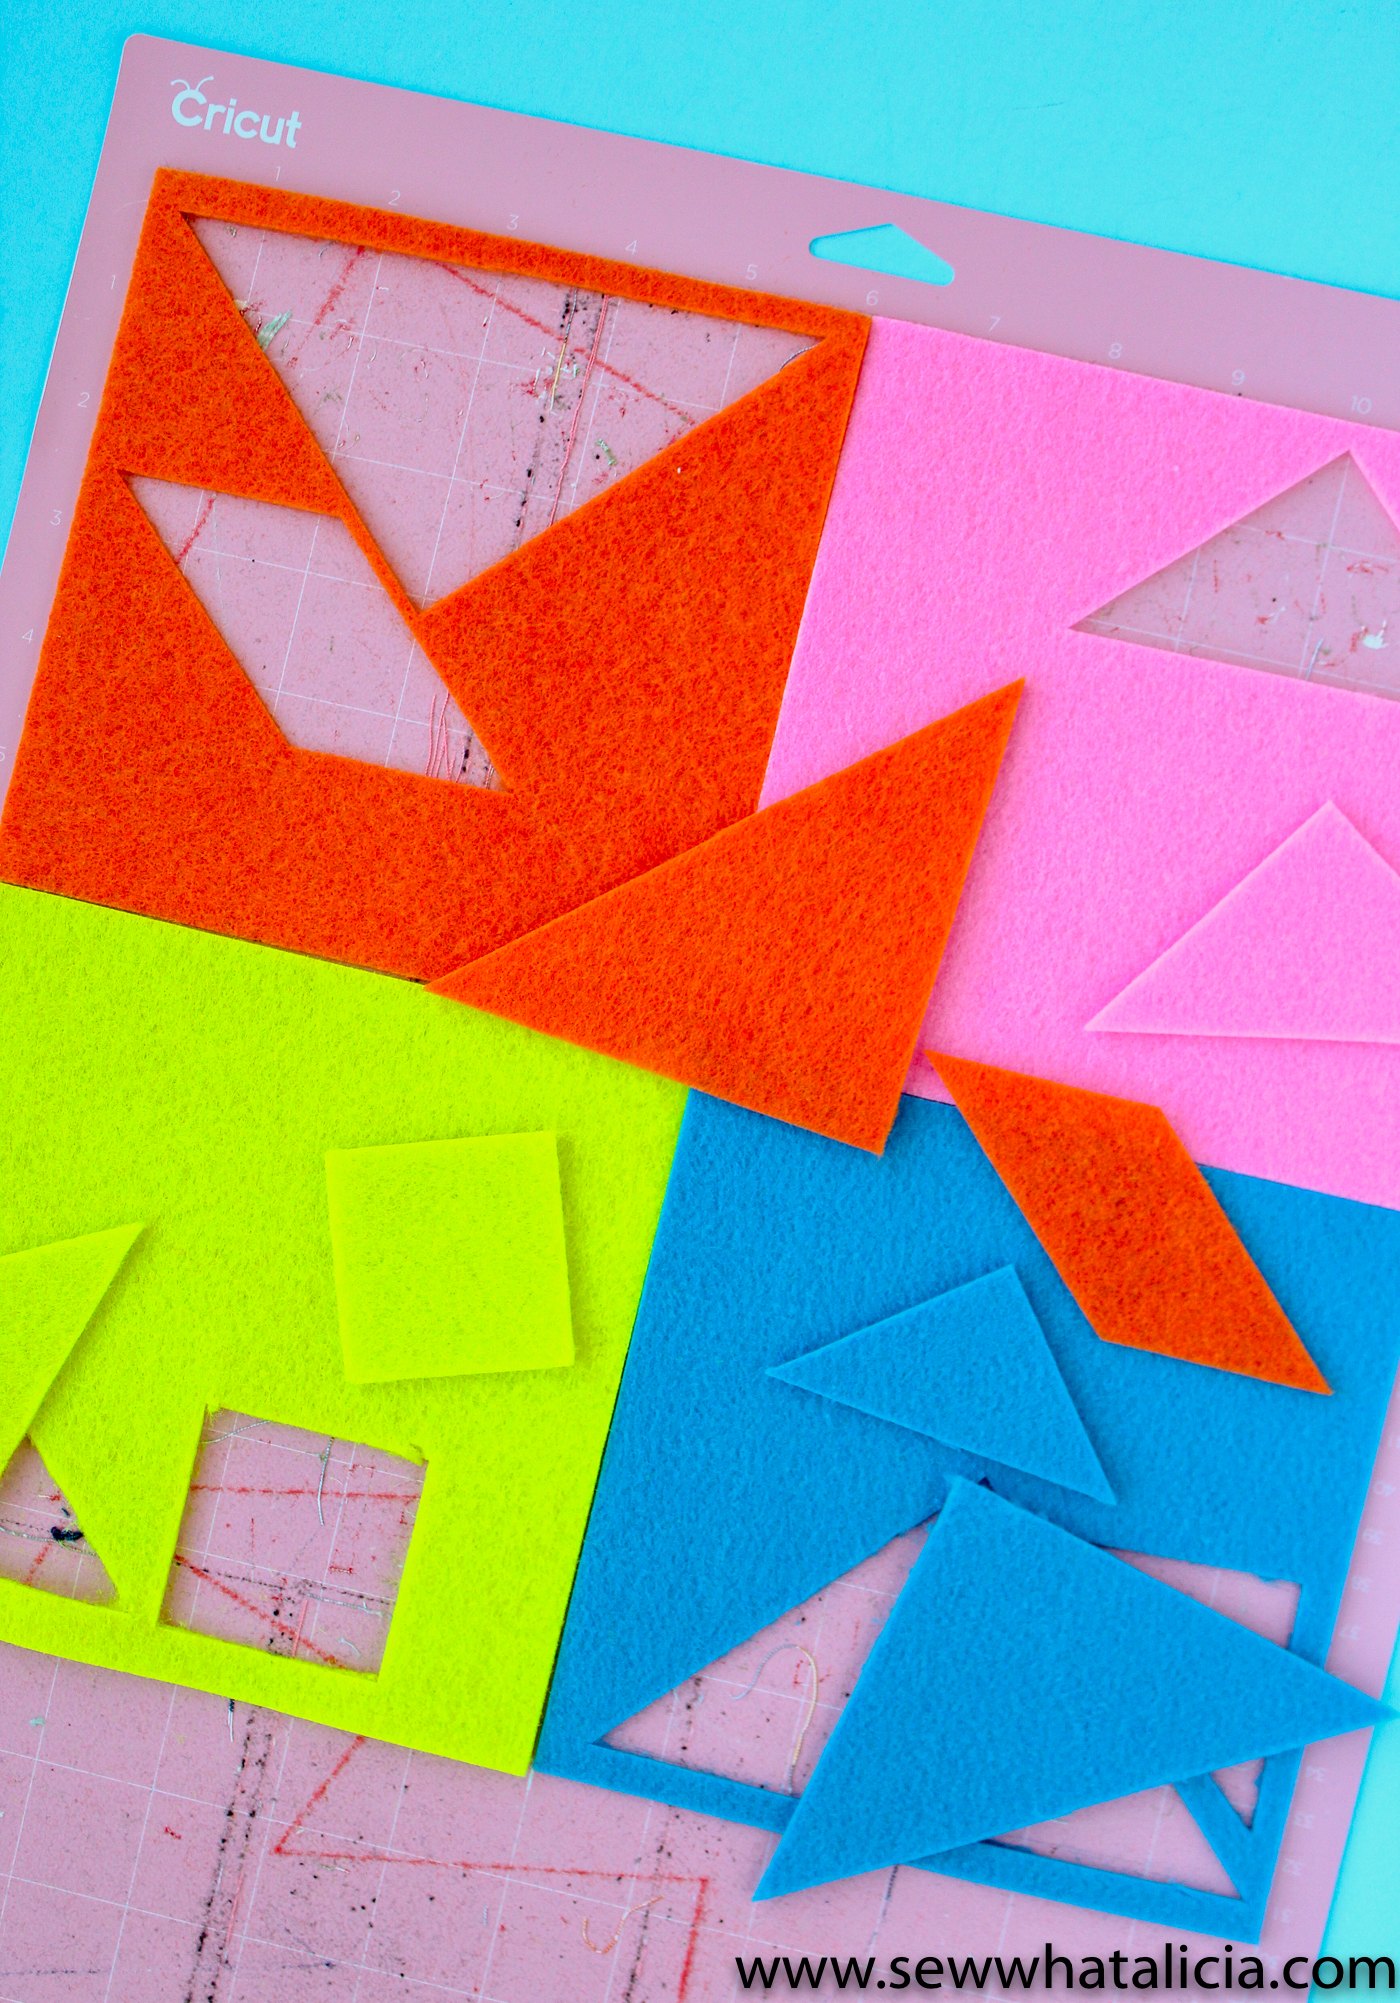 photo about Tangrams Printable Pdf named Cuttable and Printable Tangrams PDF - Sew What, Alicia?